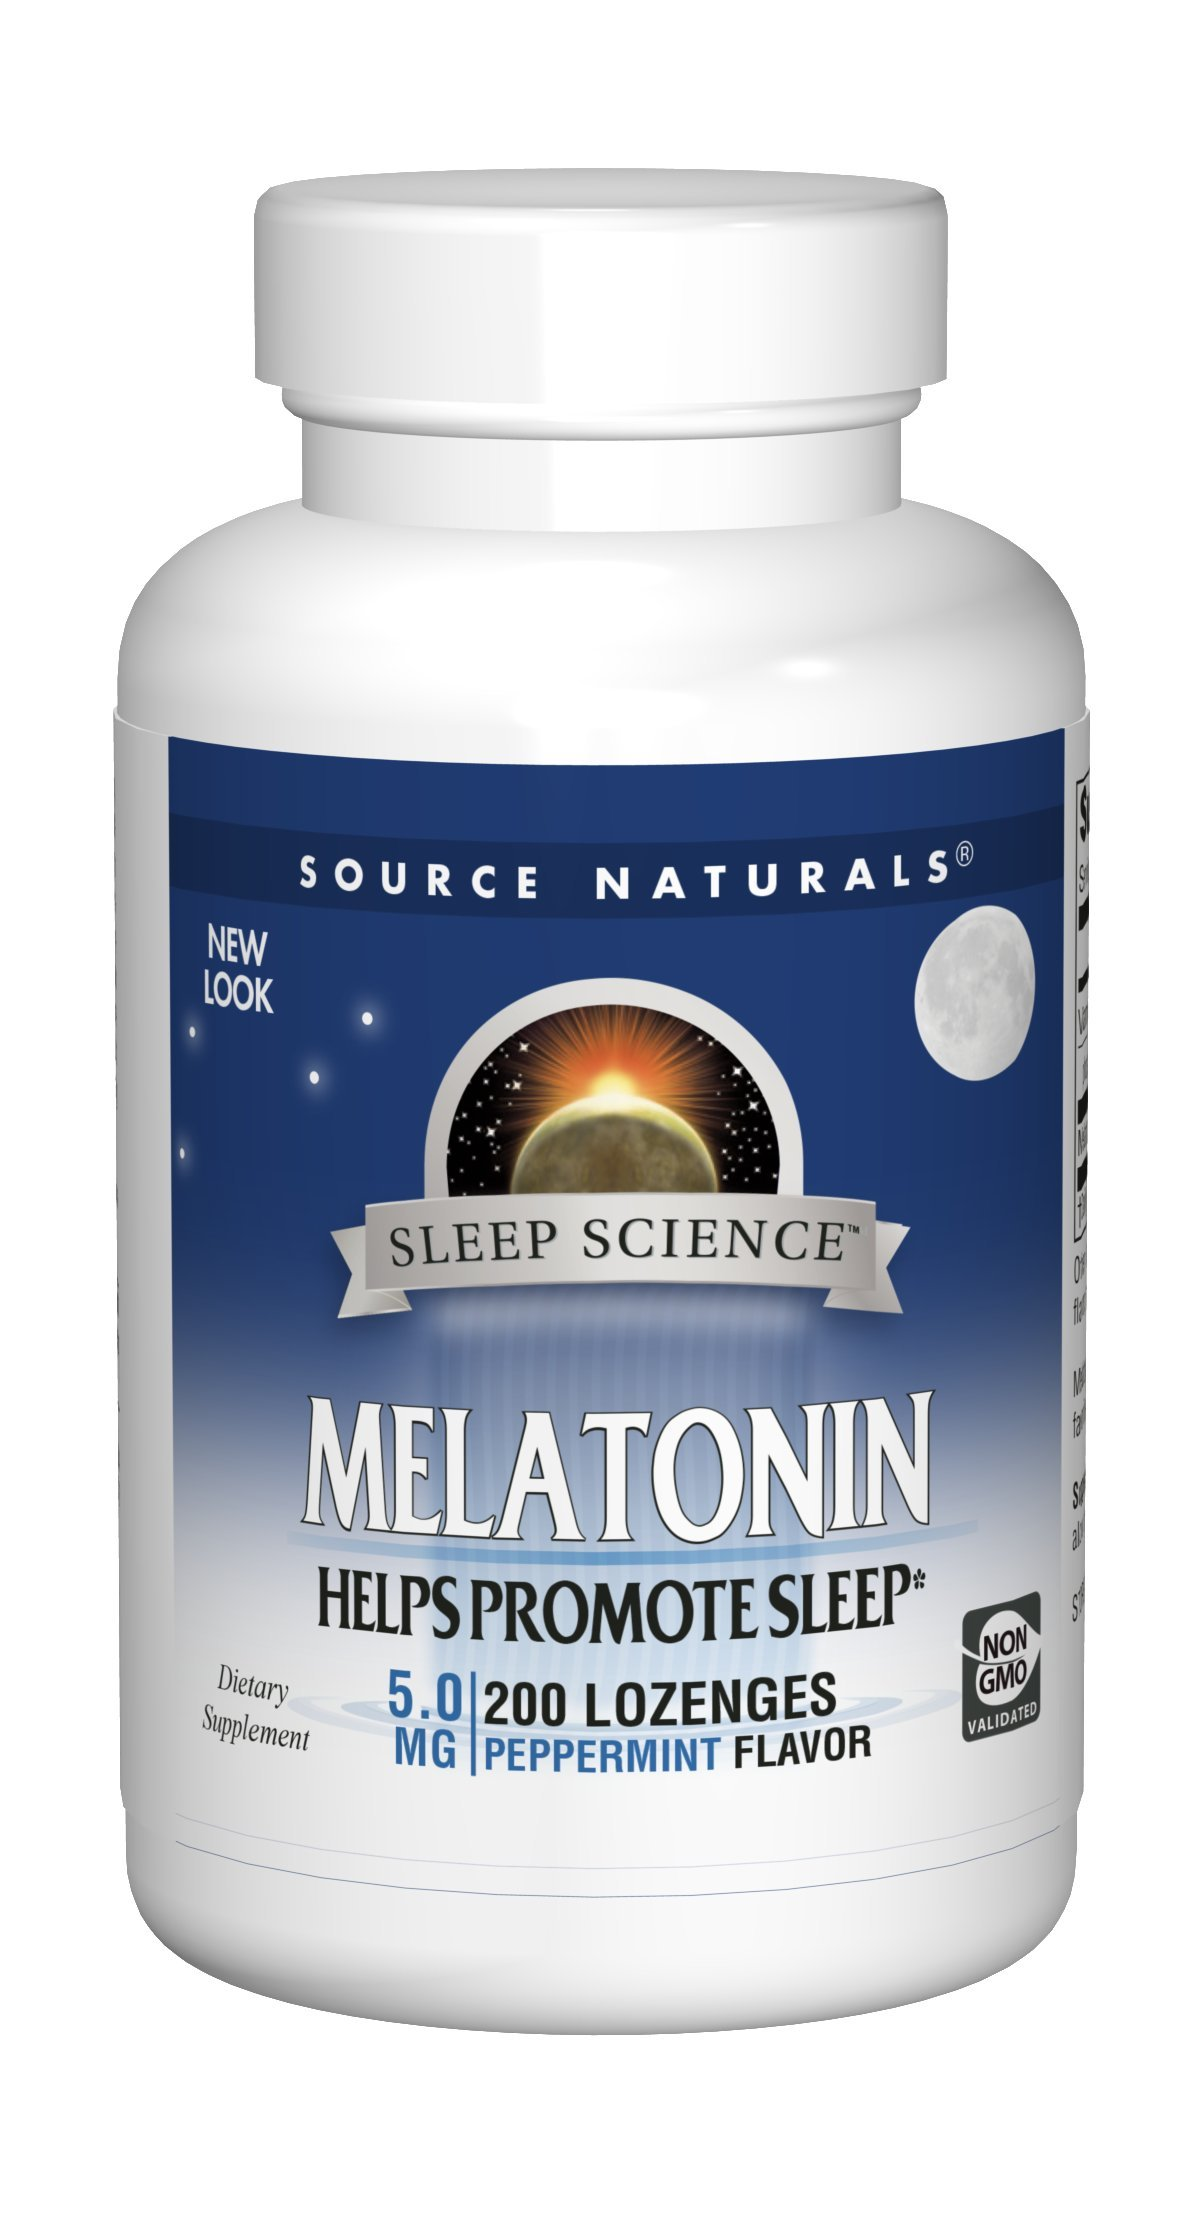 Source Naturals Sleep Science Melatonin 5mg Sleep Support Peppermint Flavor - 200 Lozenges by Source Naturals